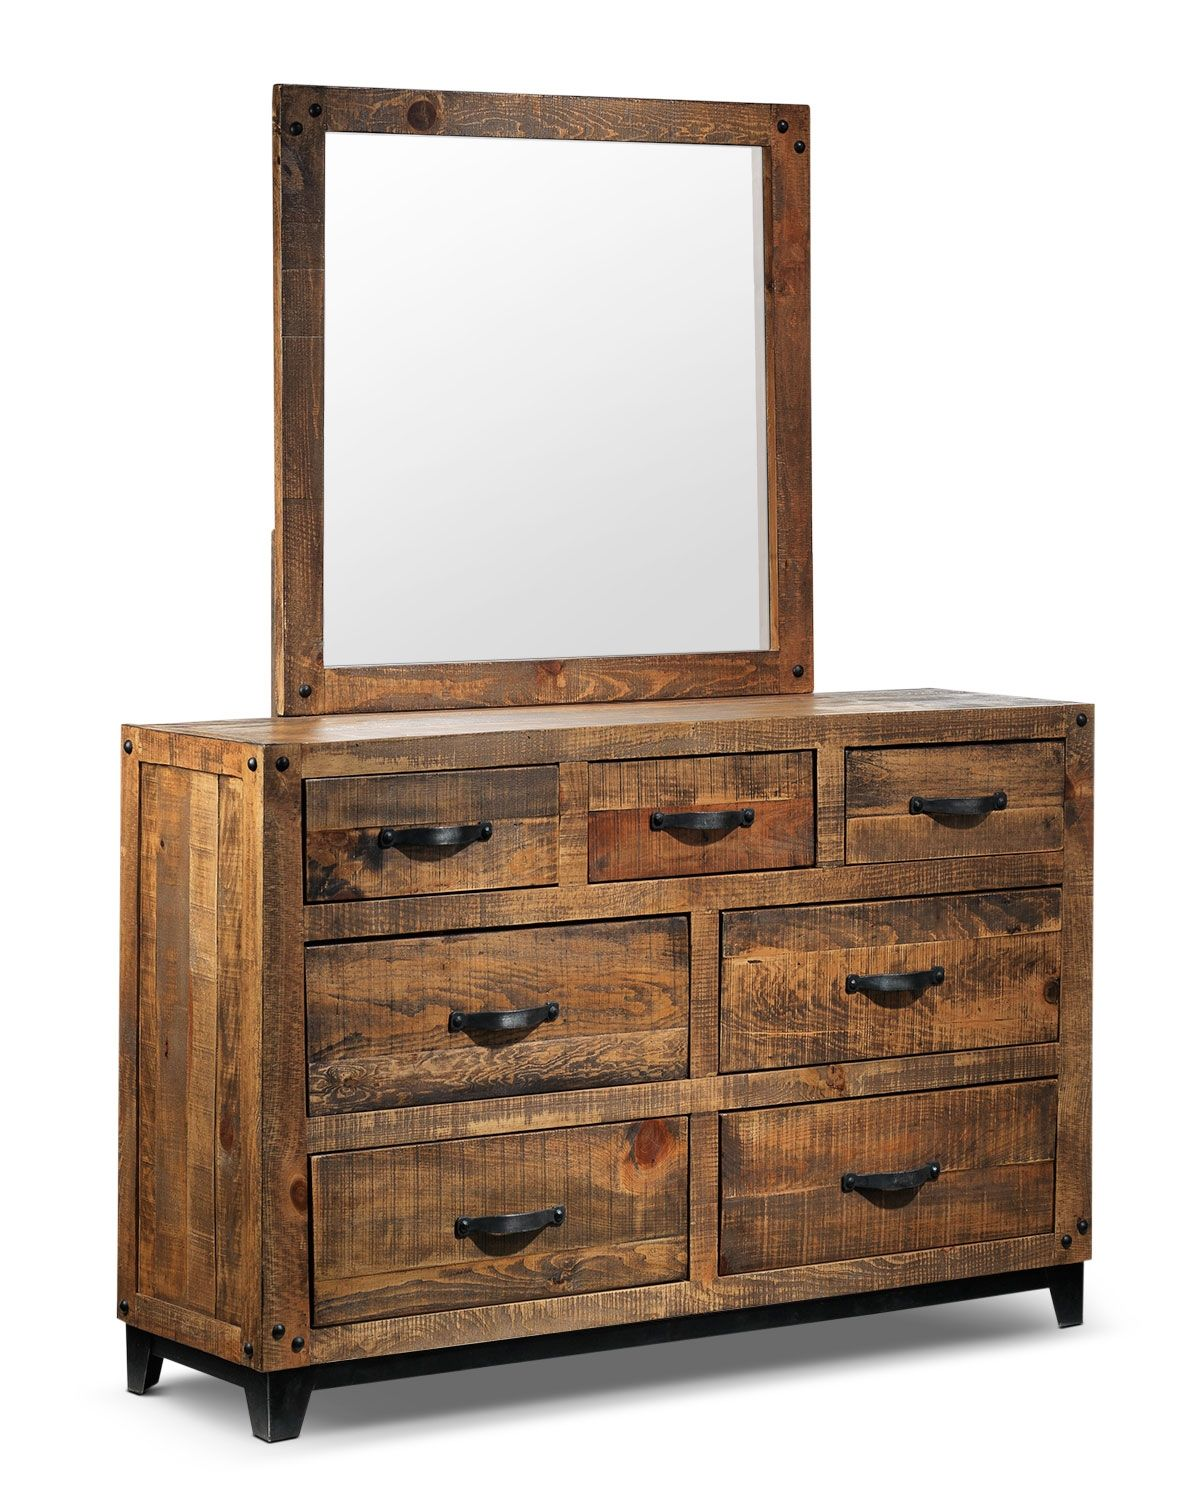 Fine rustic perfect for a casual or modern bedroom the stylishly